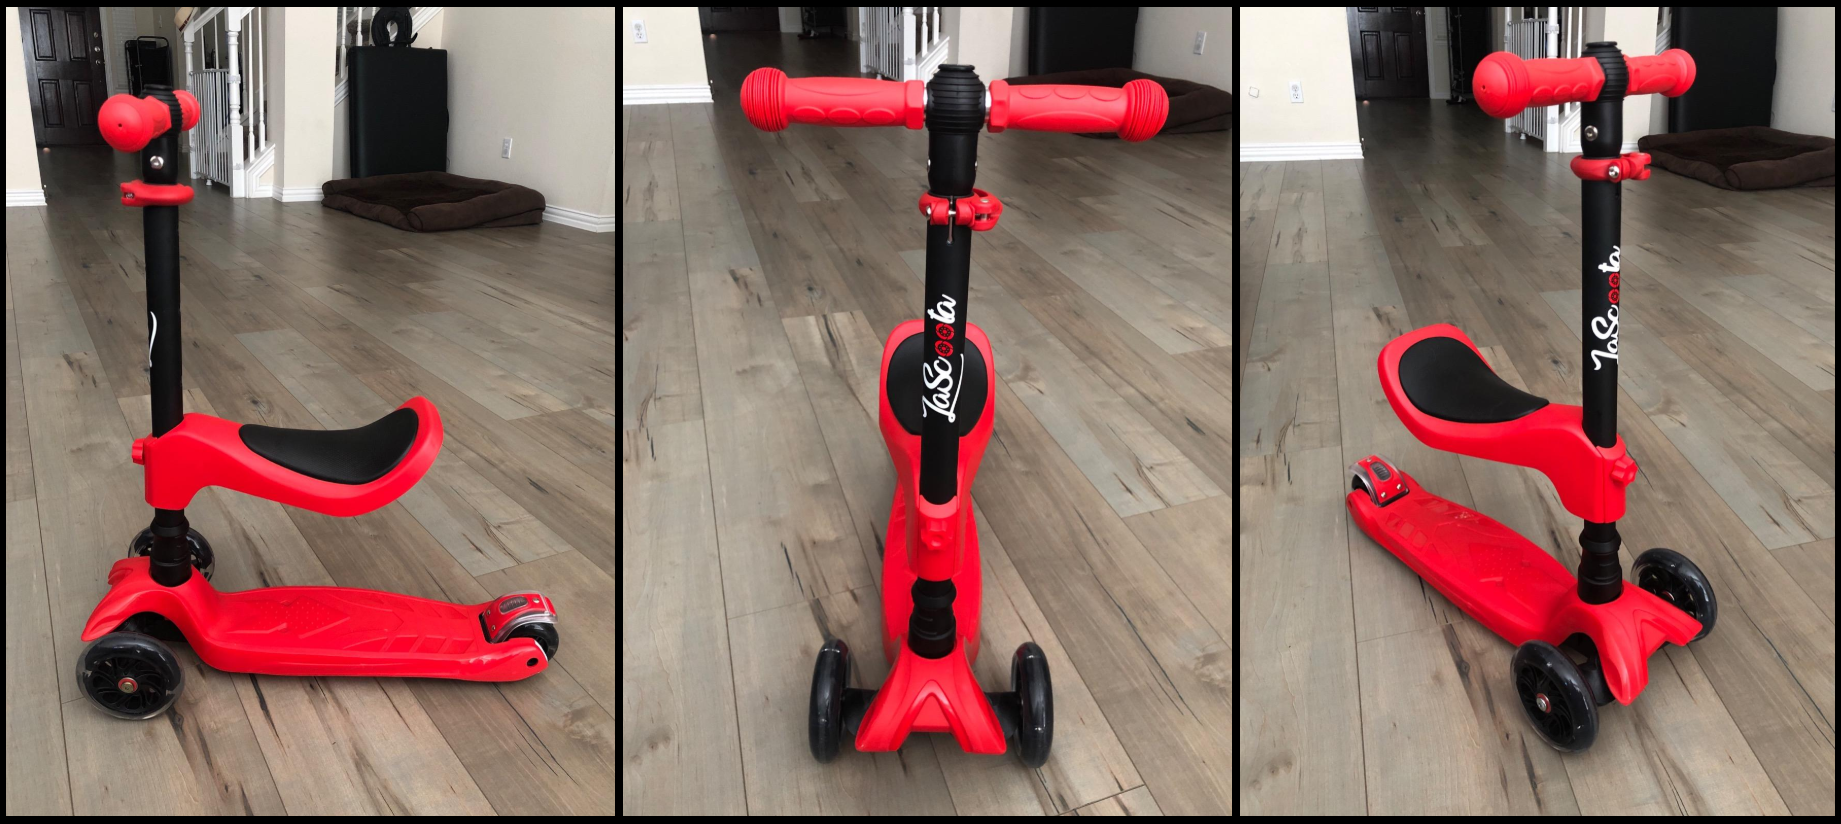 Lascoota 2-in-1 Kick Scooter with Removable Seat